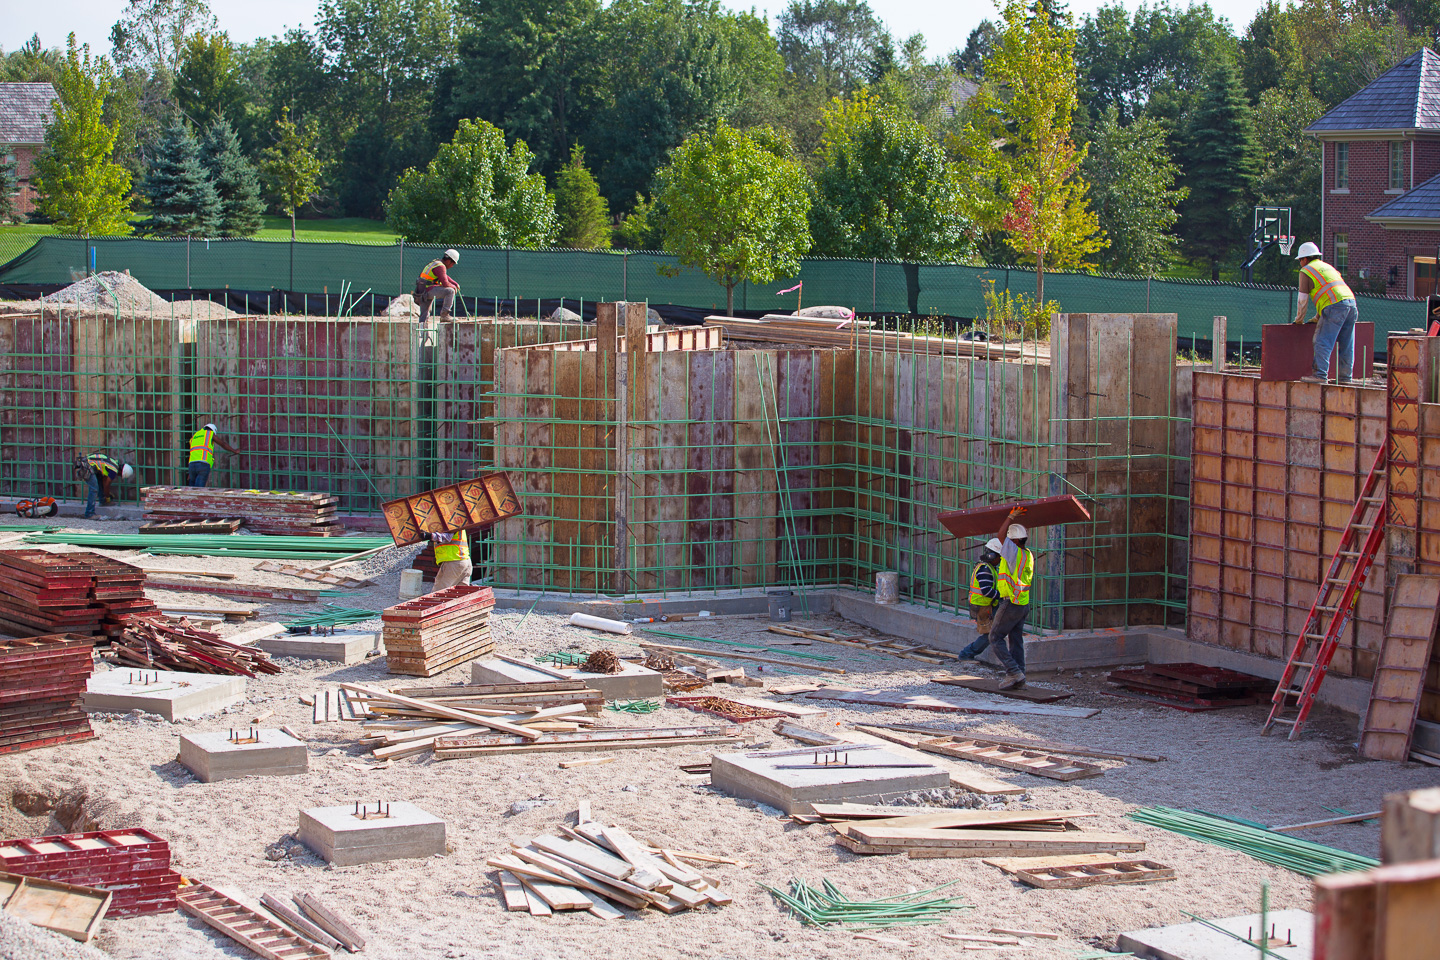 Construction workers prepping for concrete foundation wall pour.